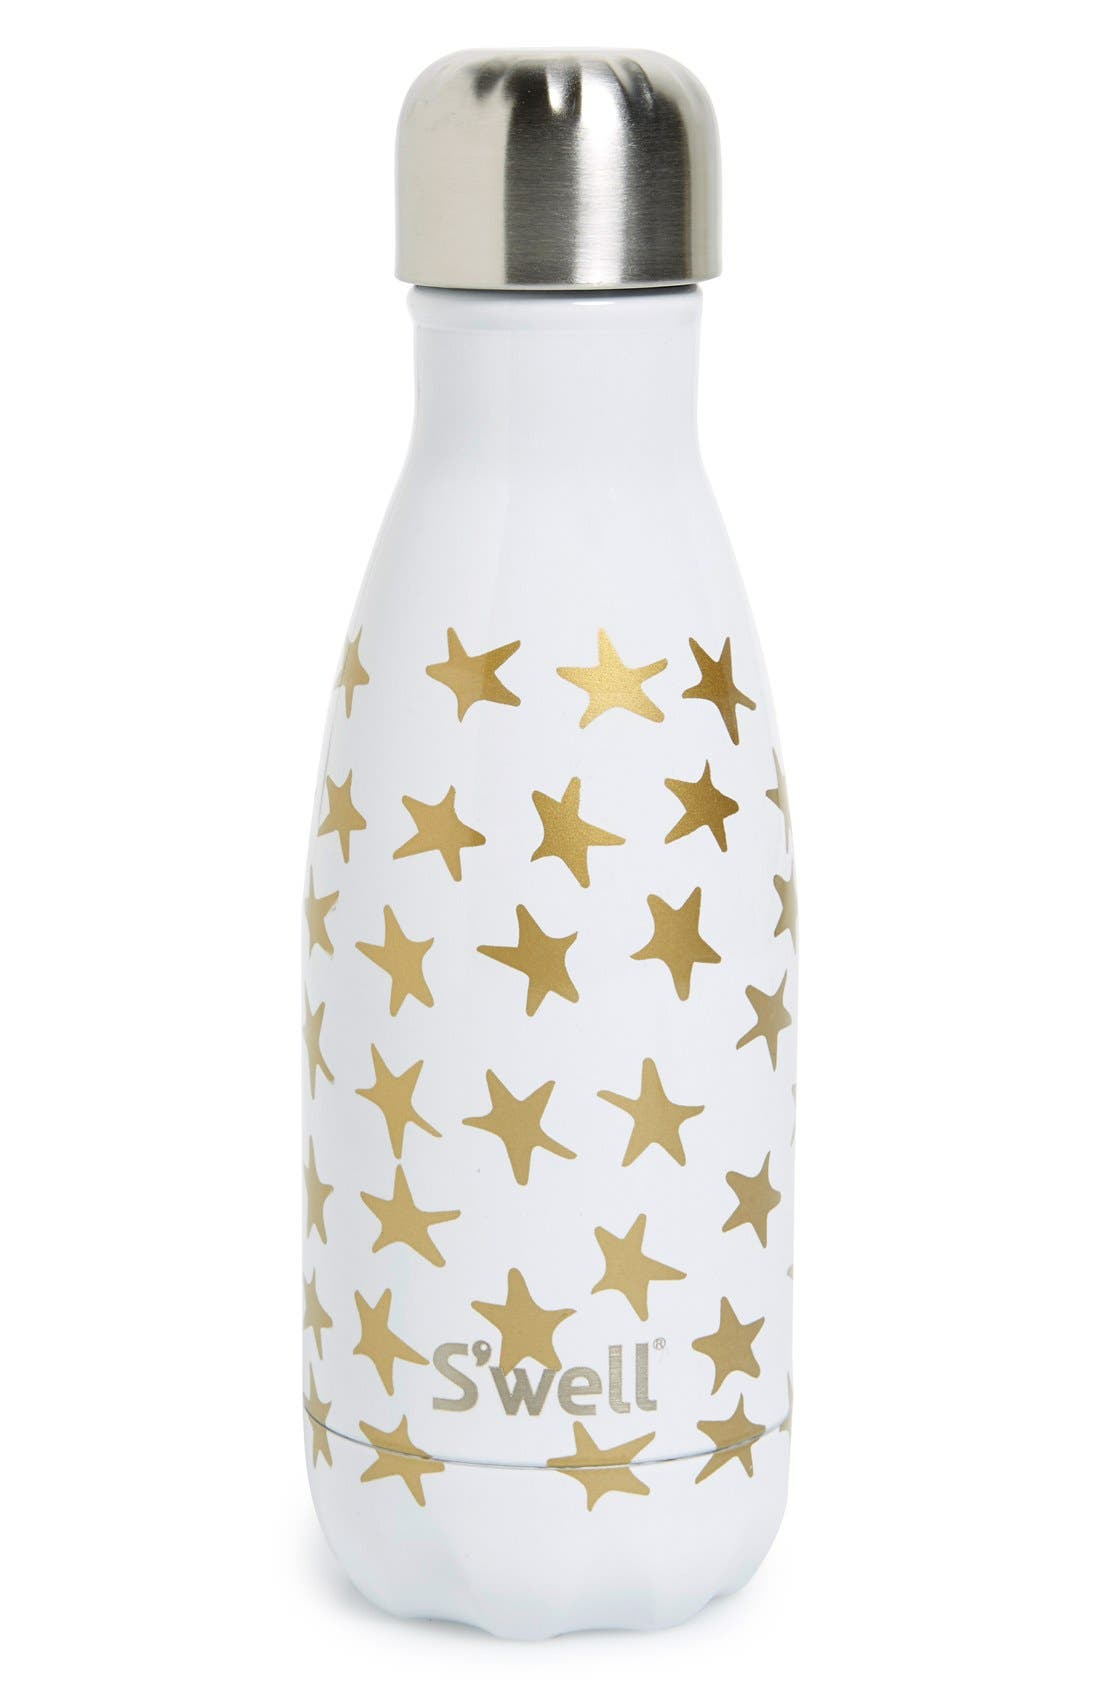 'Galaxy Collection - Star Crossed' Stainless Steel Water Bottle,                             Alternate thumbnail 5, color,                             100